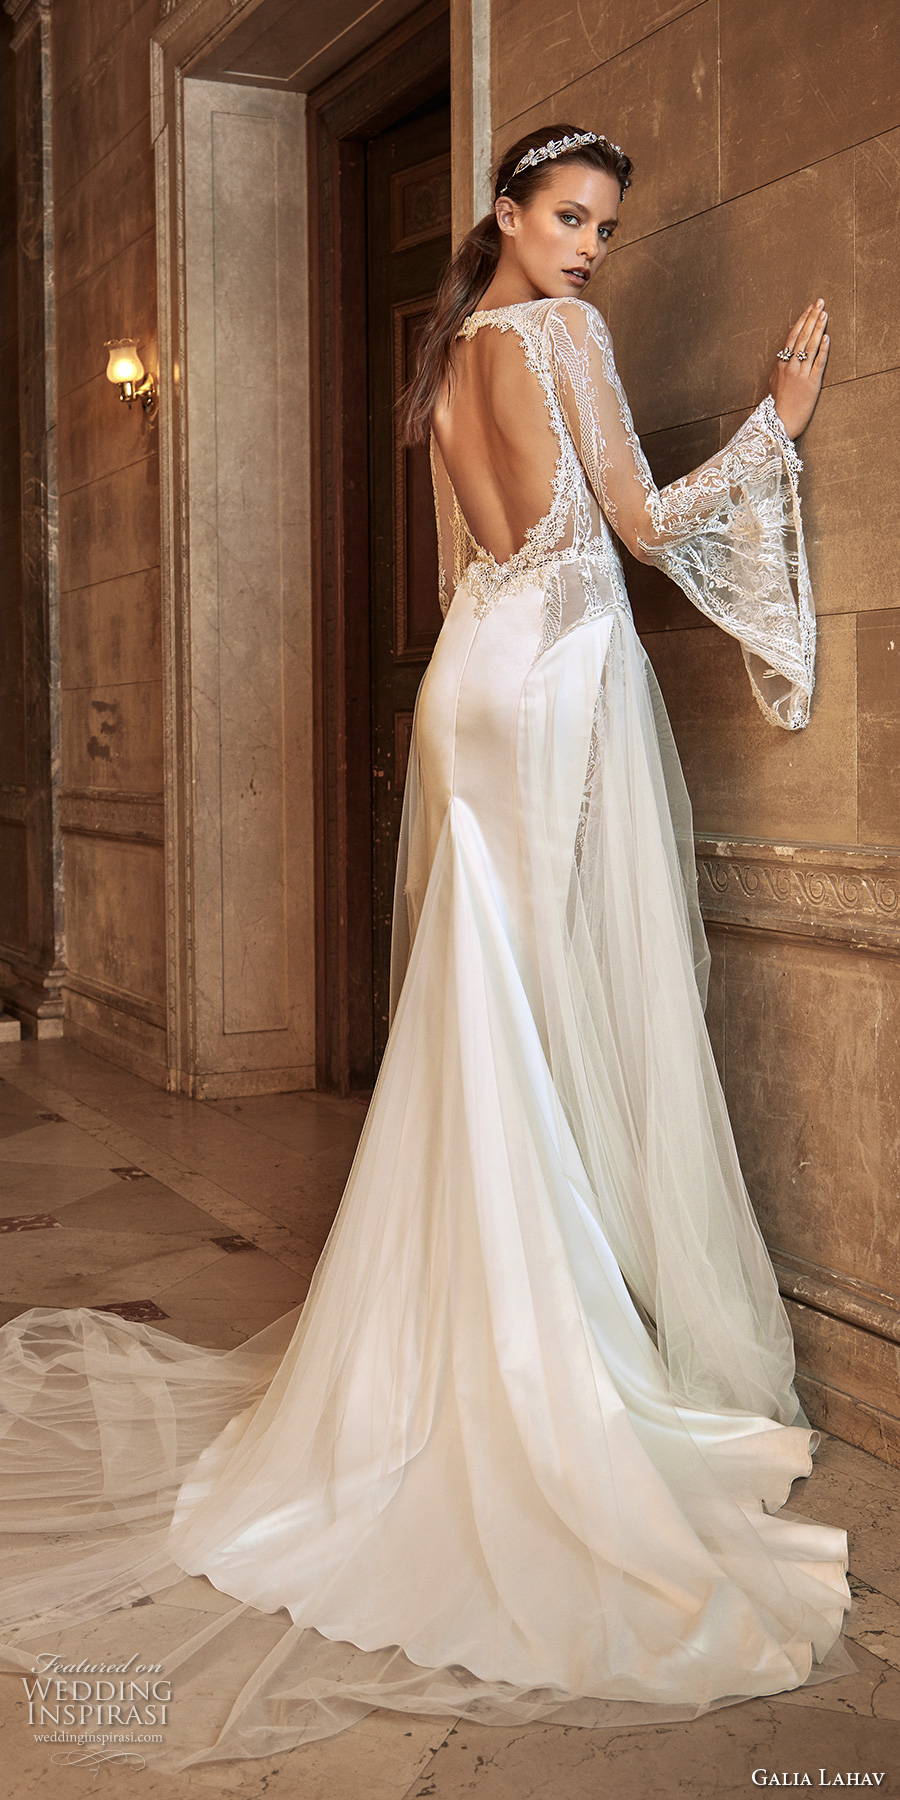 galia lahav fall 2017 bridal long bell sleeves illusion bateau deep plunging sweetheart neckline satin skirt elegant sheath wedding dress keyhole back chapel train (penelope) bv